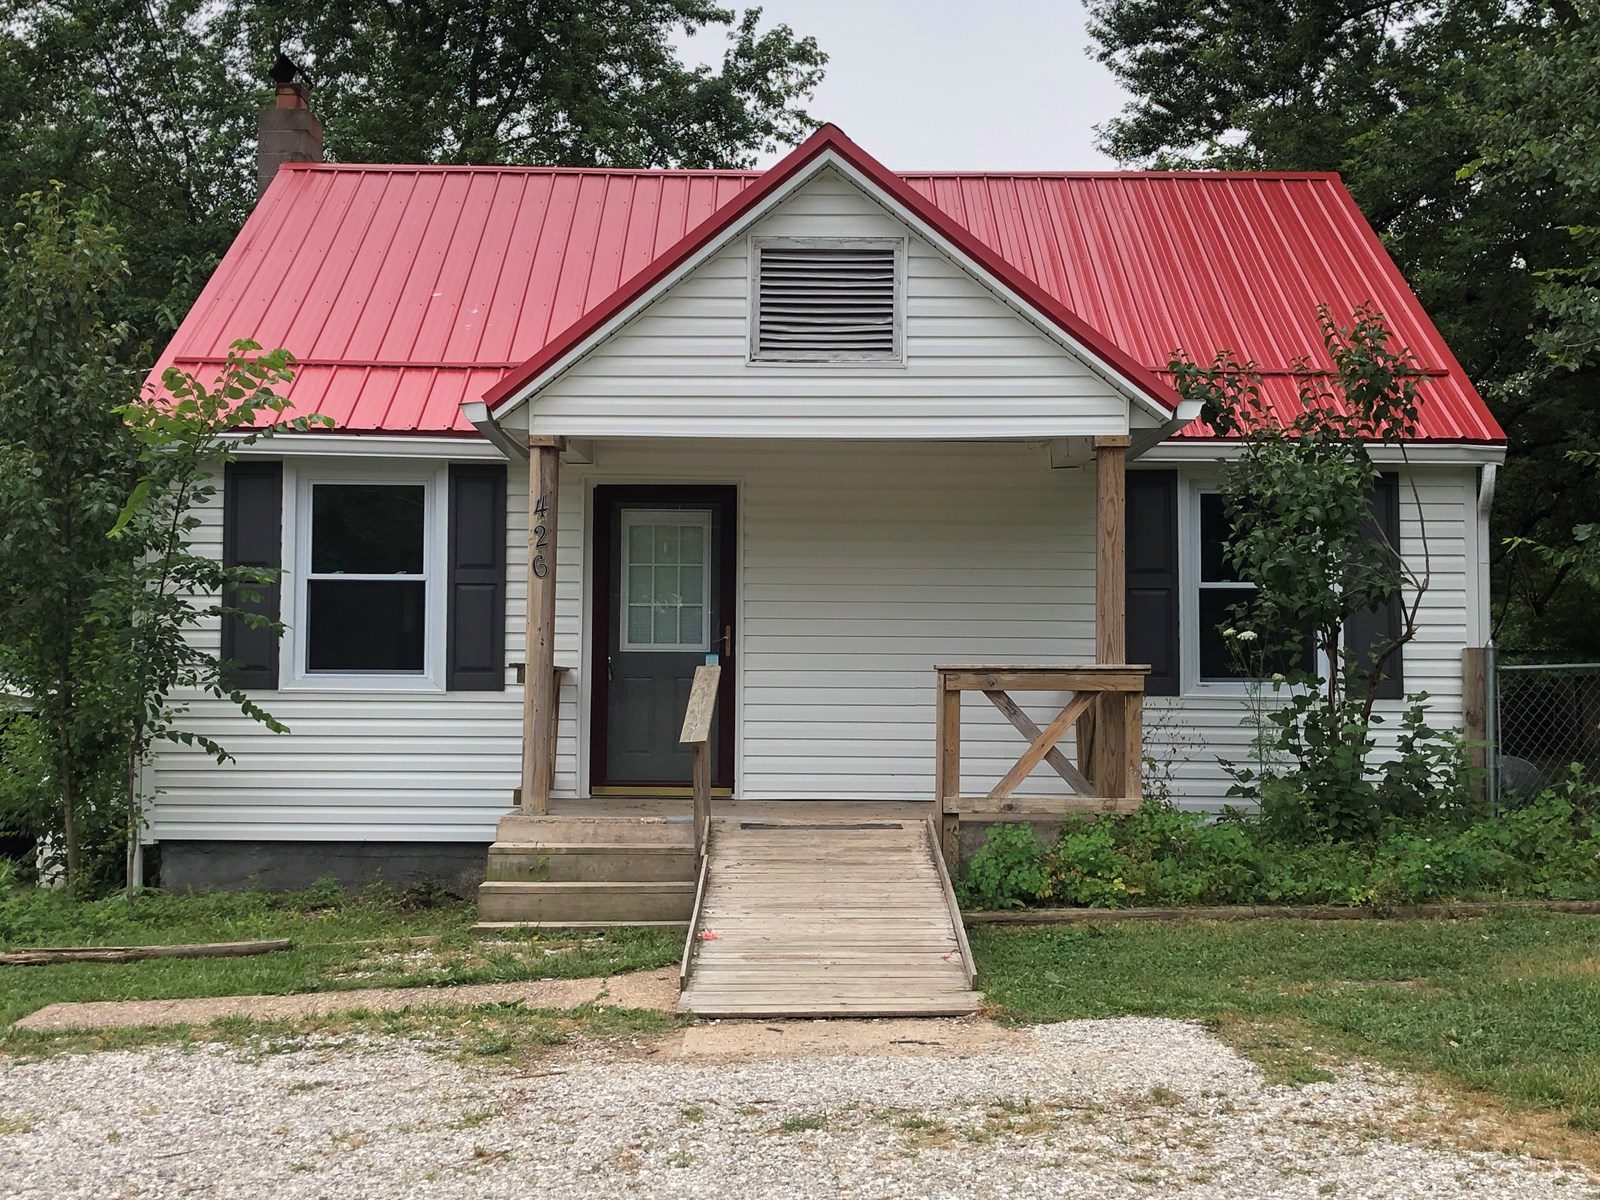 3 Bedroom home outside city limits.  Sits on 1.49 acres.